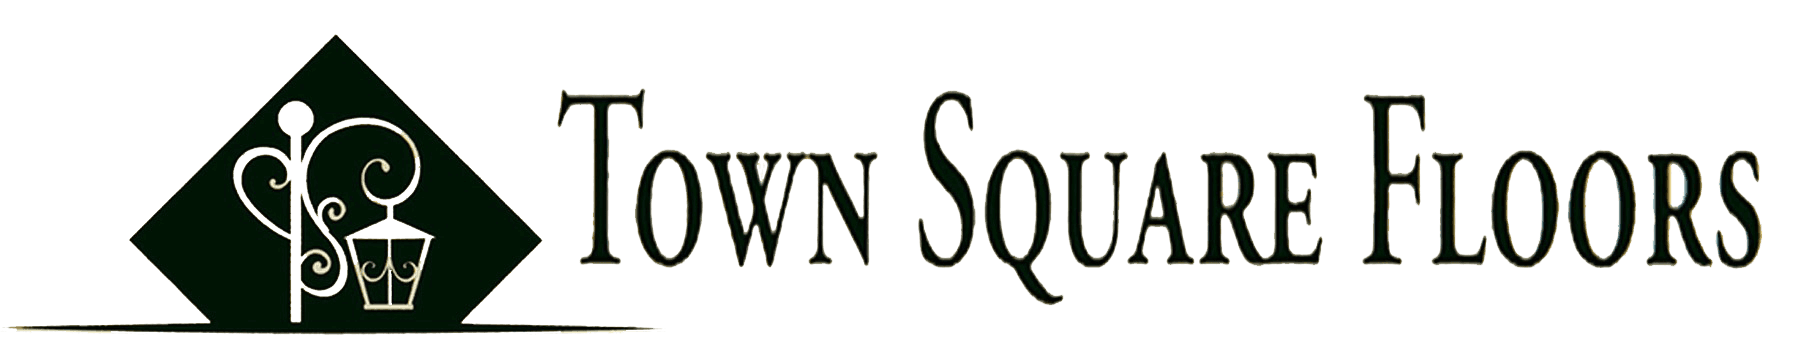 Town Square Floors - Logo